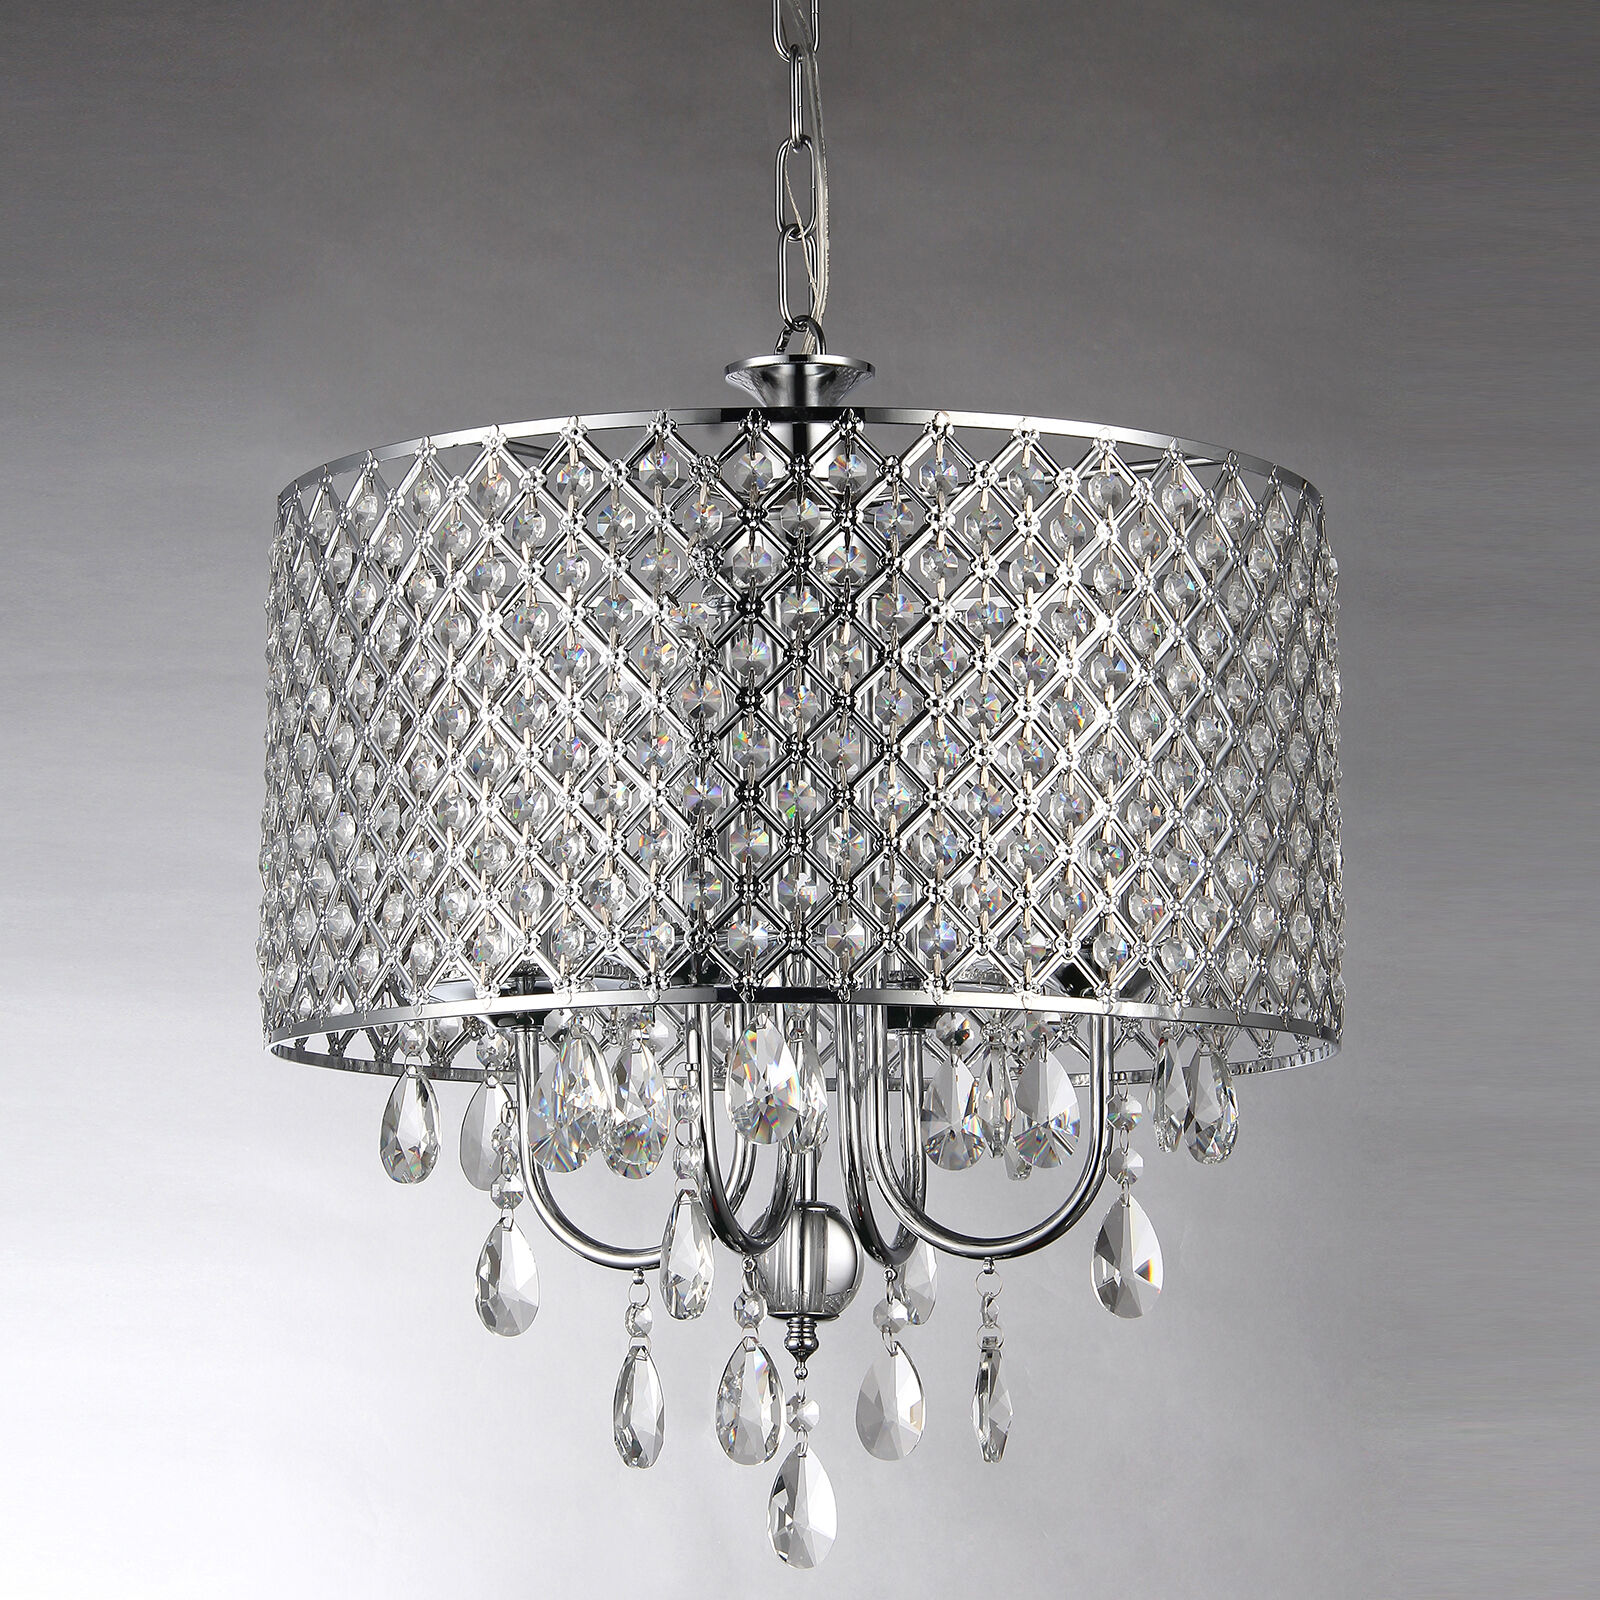 Marya 4 Light Round Drum Crystal Chandelier Ceiling Fixture Chrome Finish 1 Of 10only Available